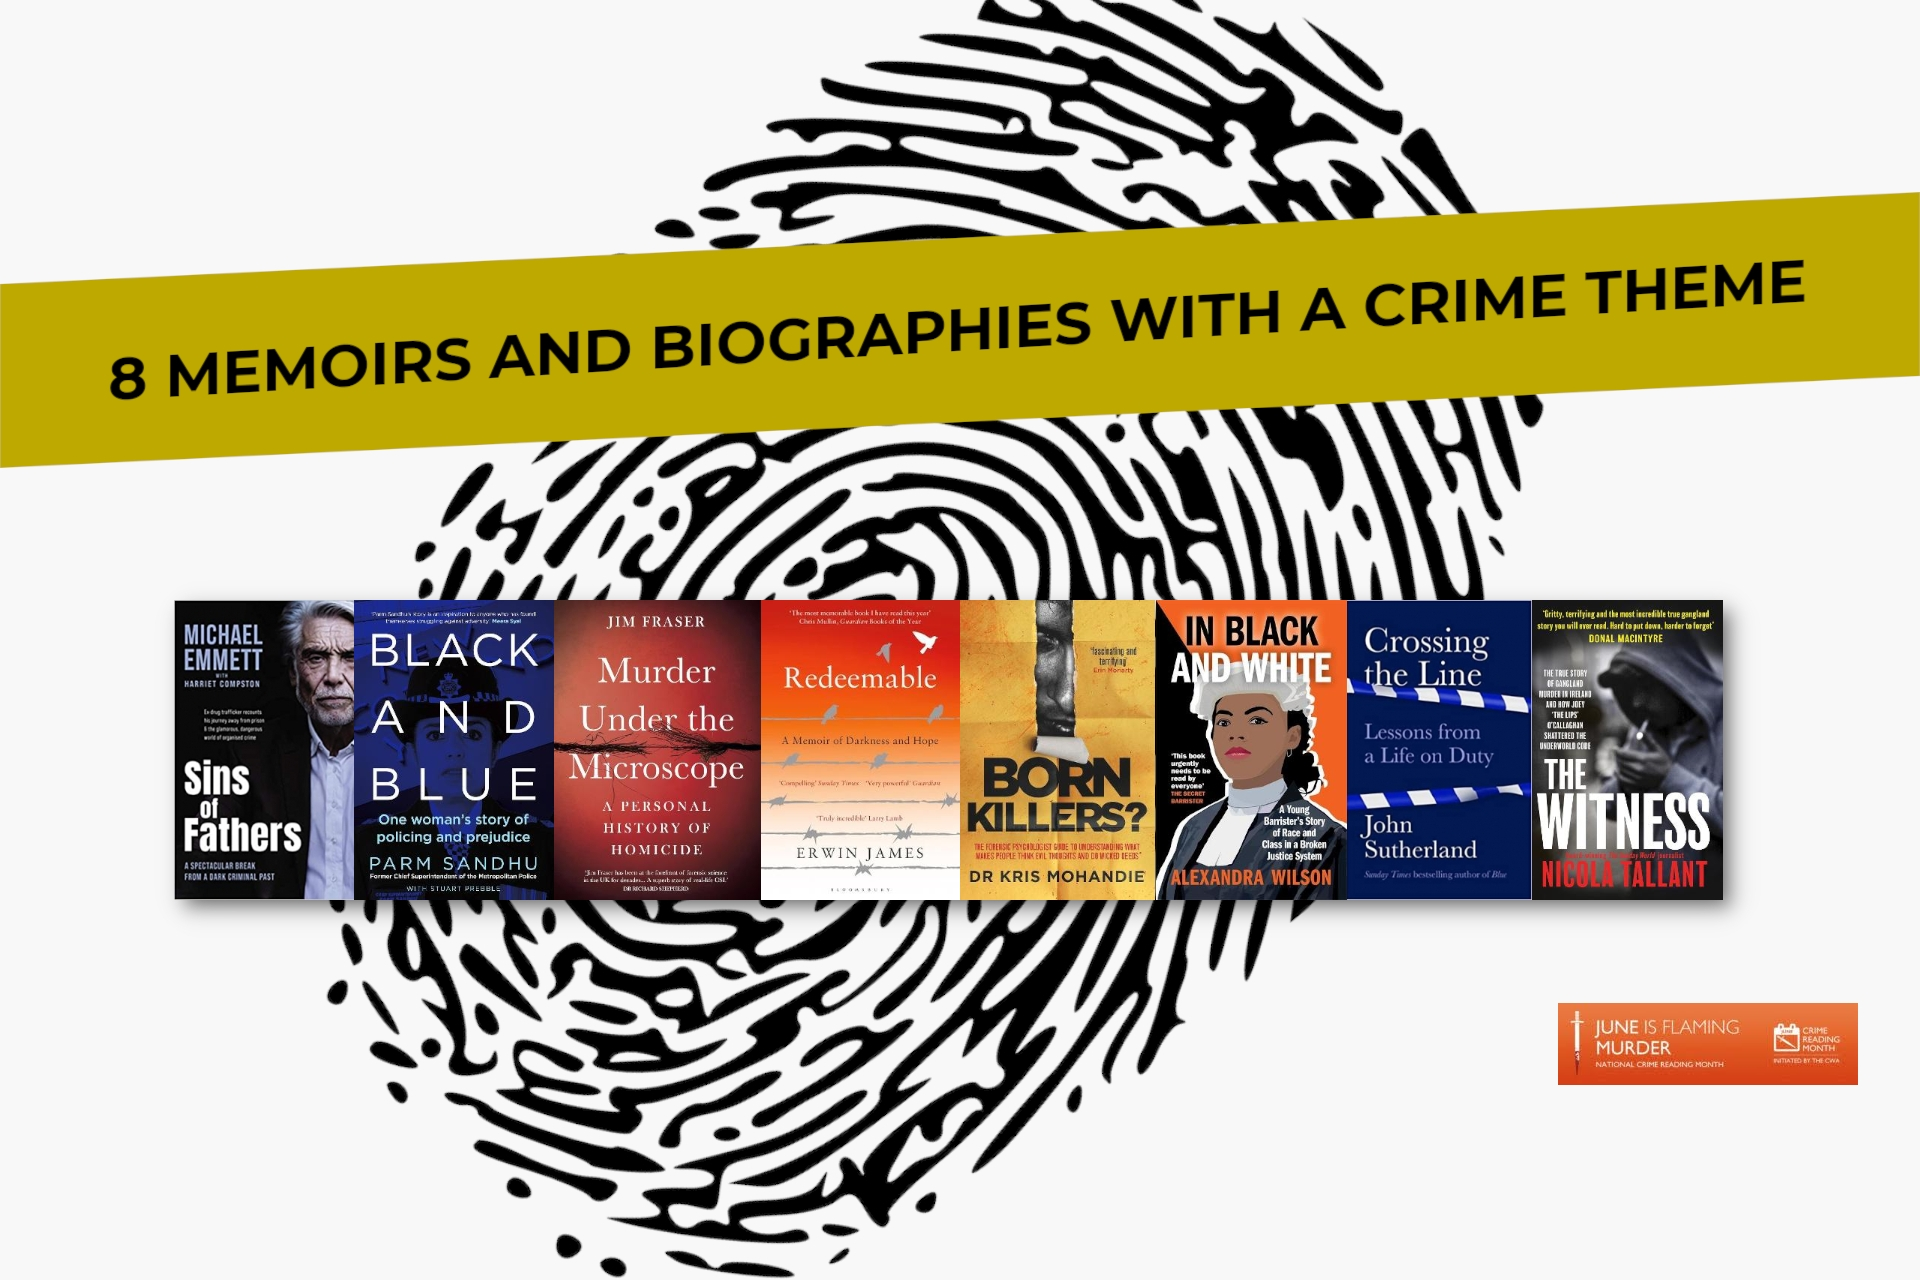 8 Memoirs and Biographies with a Crime Theme